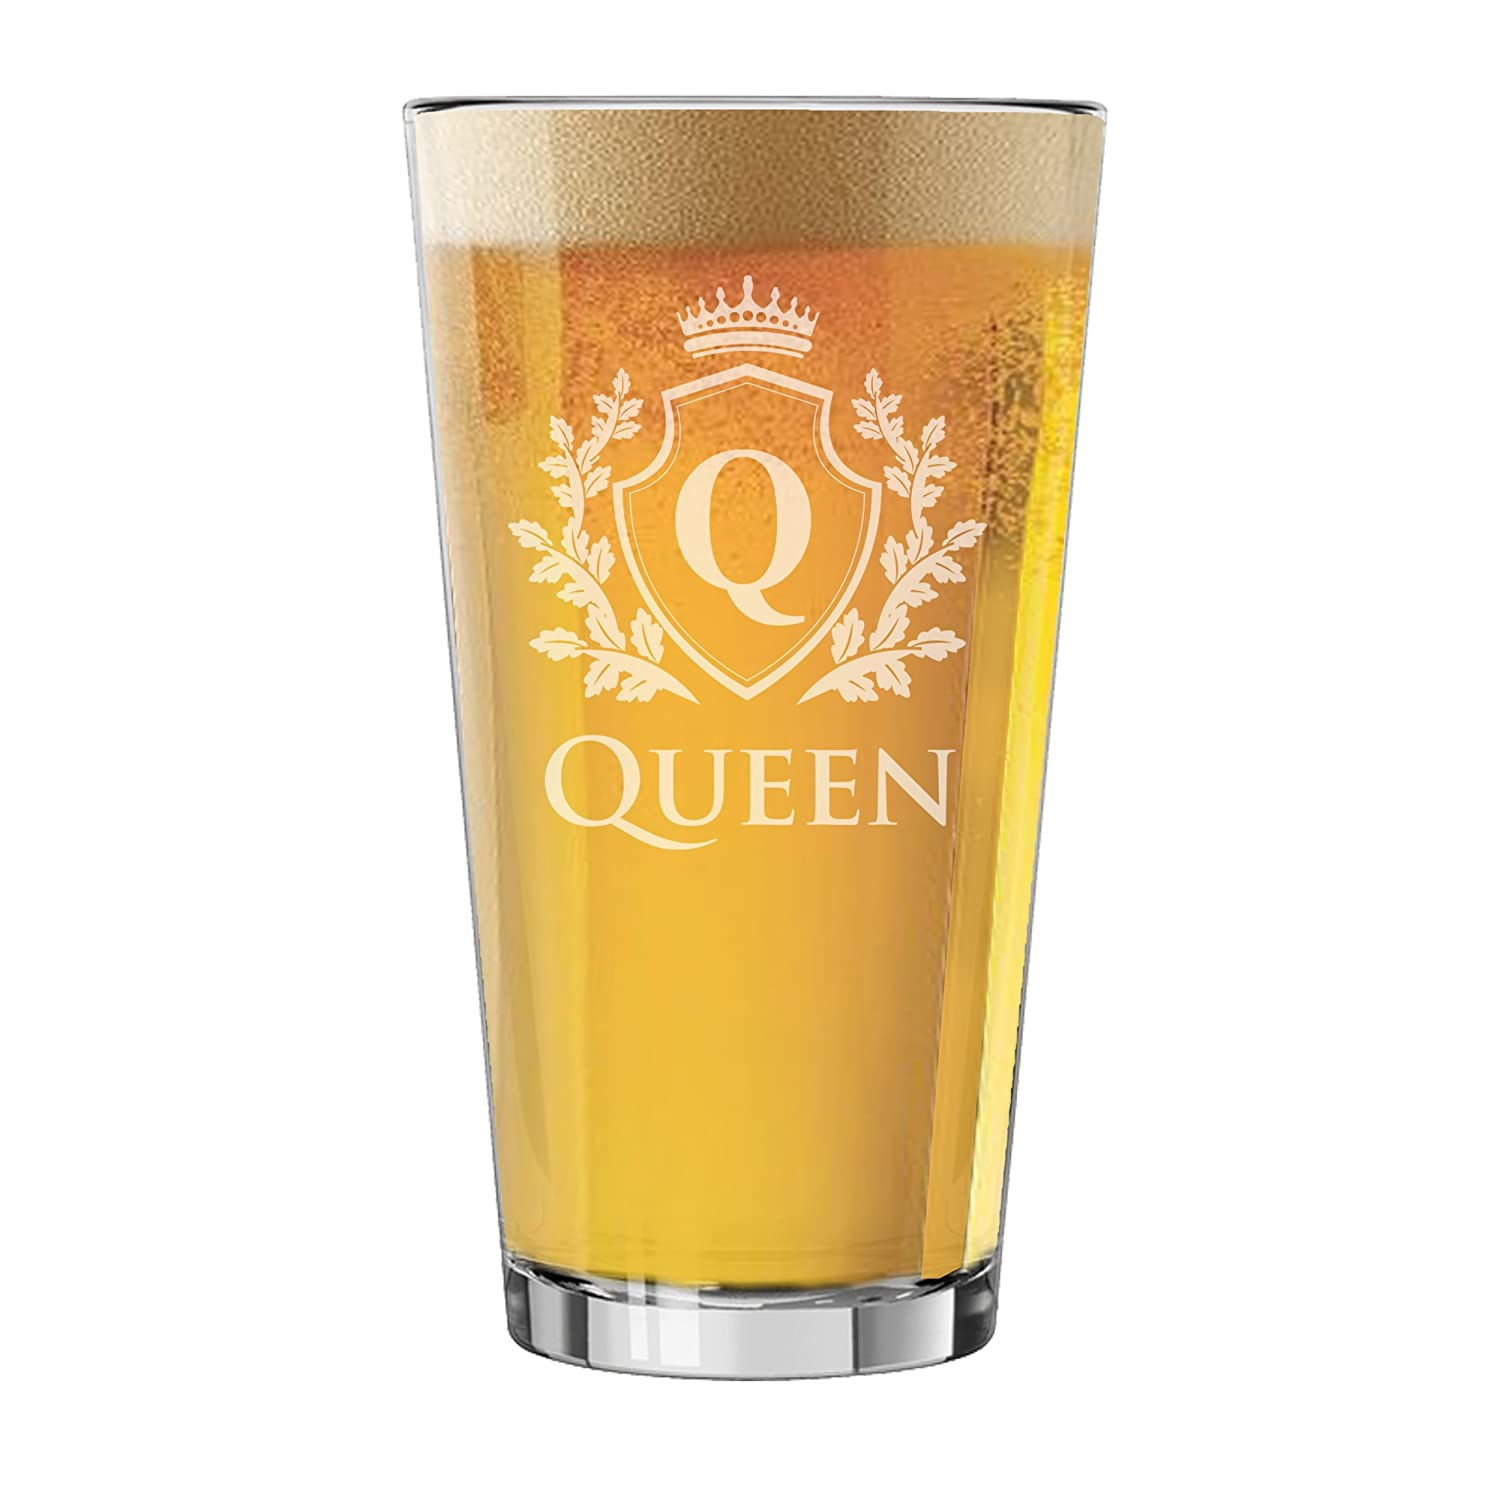 MPM0372F and Couples Anniversary Wedding Pint Beer Glass My Personal Memories King and Queen Stemless Wine Glasses Square Rocks Glass 9oz, Knight King Whiskey Rocks Glassware Set for Bridal Shower Gift